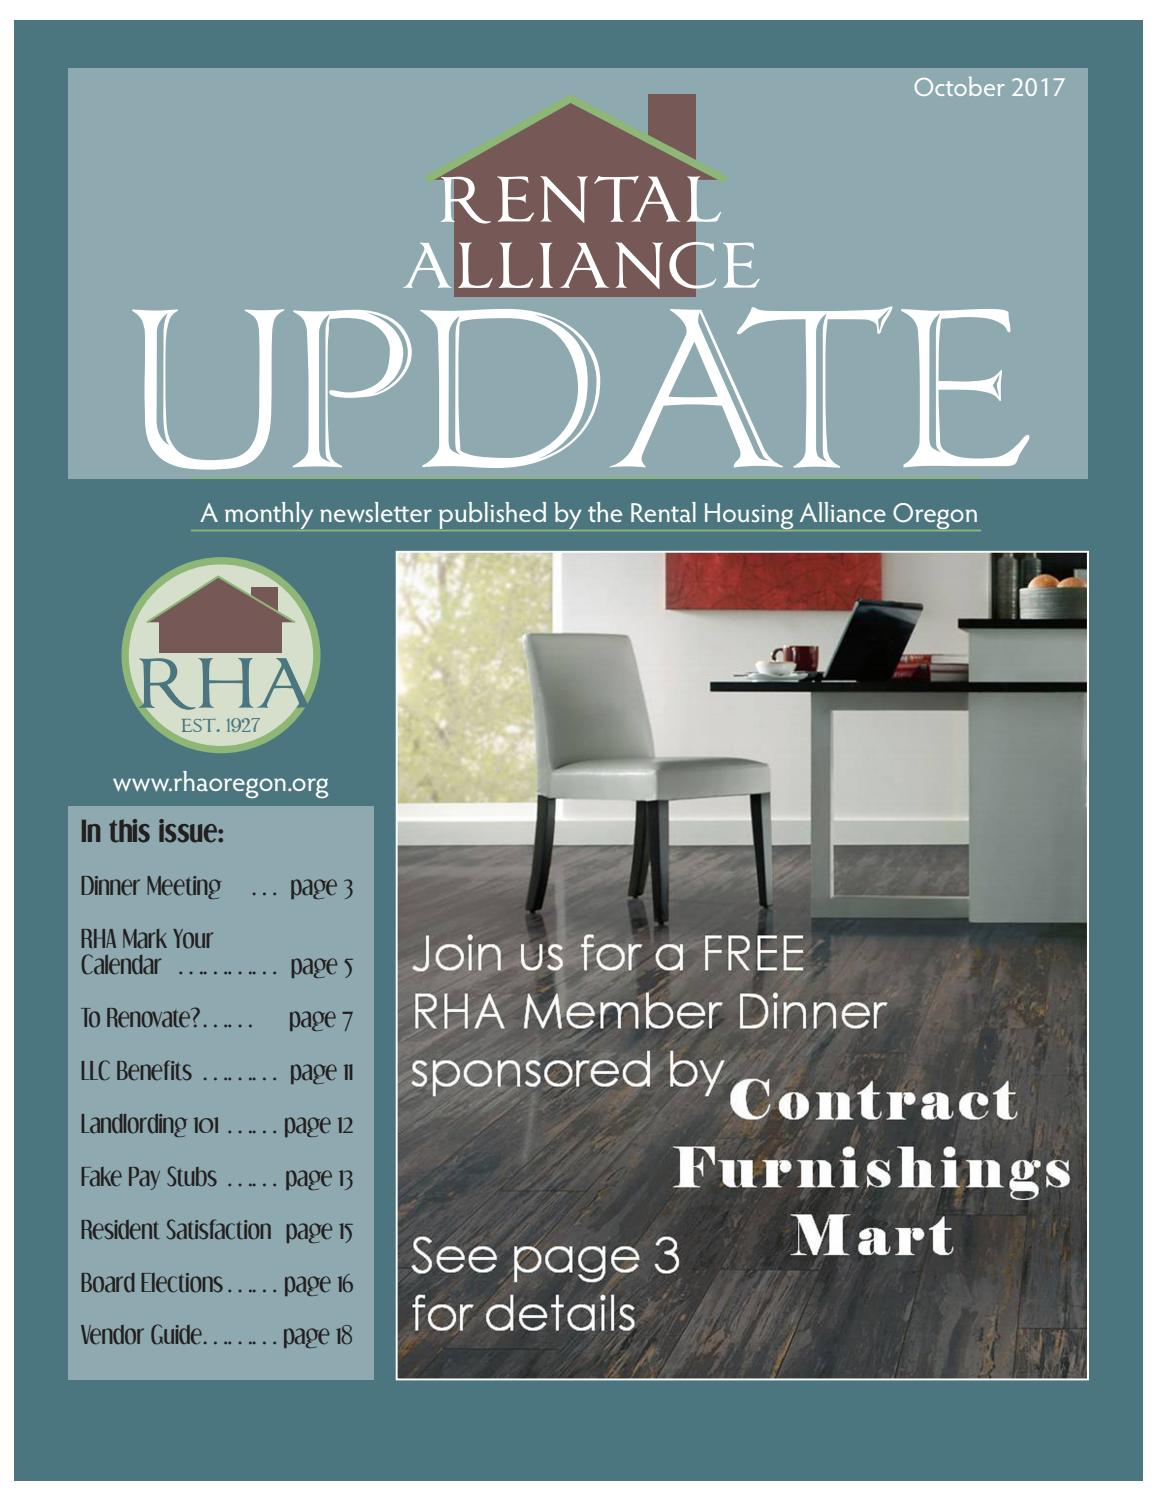 Unusual October 2017 Rha Update Newsletter By Cari Pierce Issuu Contract Furnishings Mart Vancouver Wa Contract Furnishings Mart Tigard Oregon houzz 01 Contract Furnishings Mart